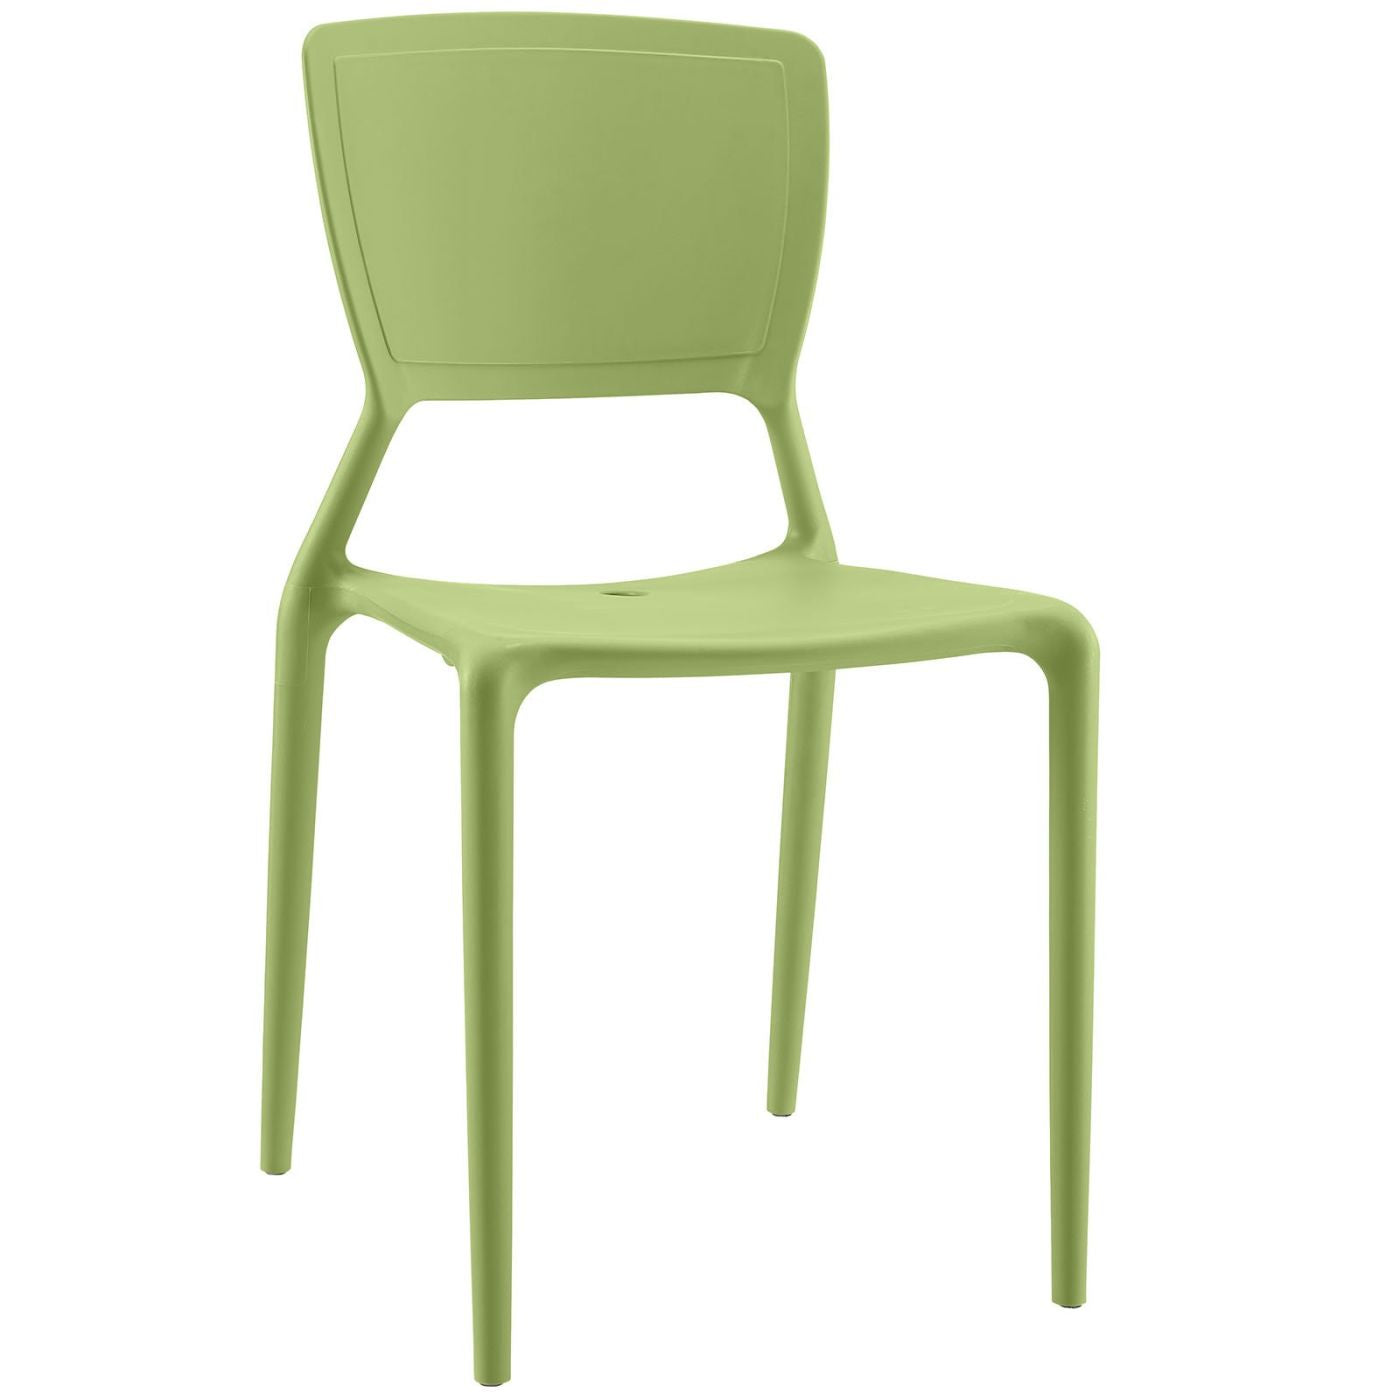 Fantastic Modway Dining Chairs On Sale Eei 1705 Grn Fine Modern Stackable Plastic Dining Side Chair Only Only 87 80 At Contemporary Furniture Warehouse Ncnpc Chair Design For Home Ncnpcorg